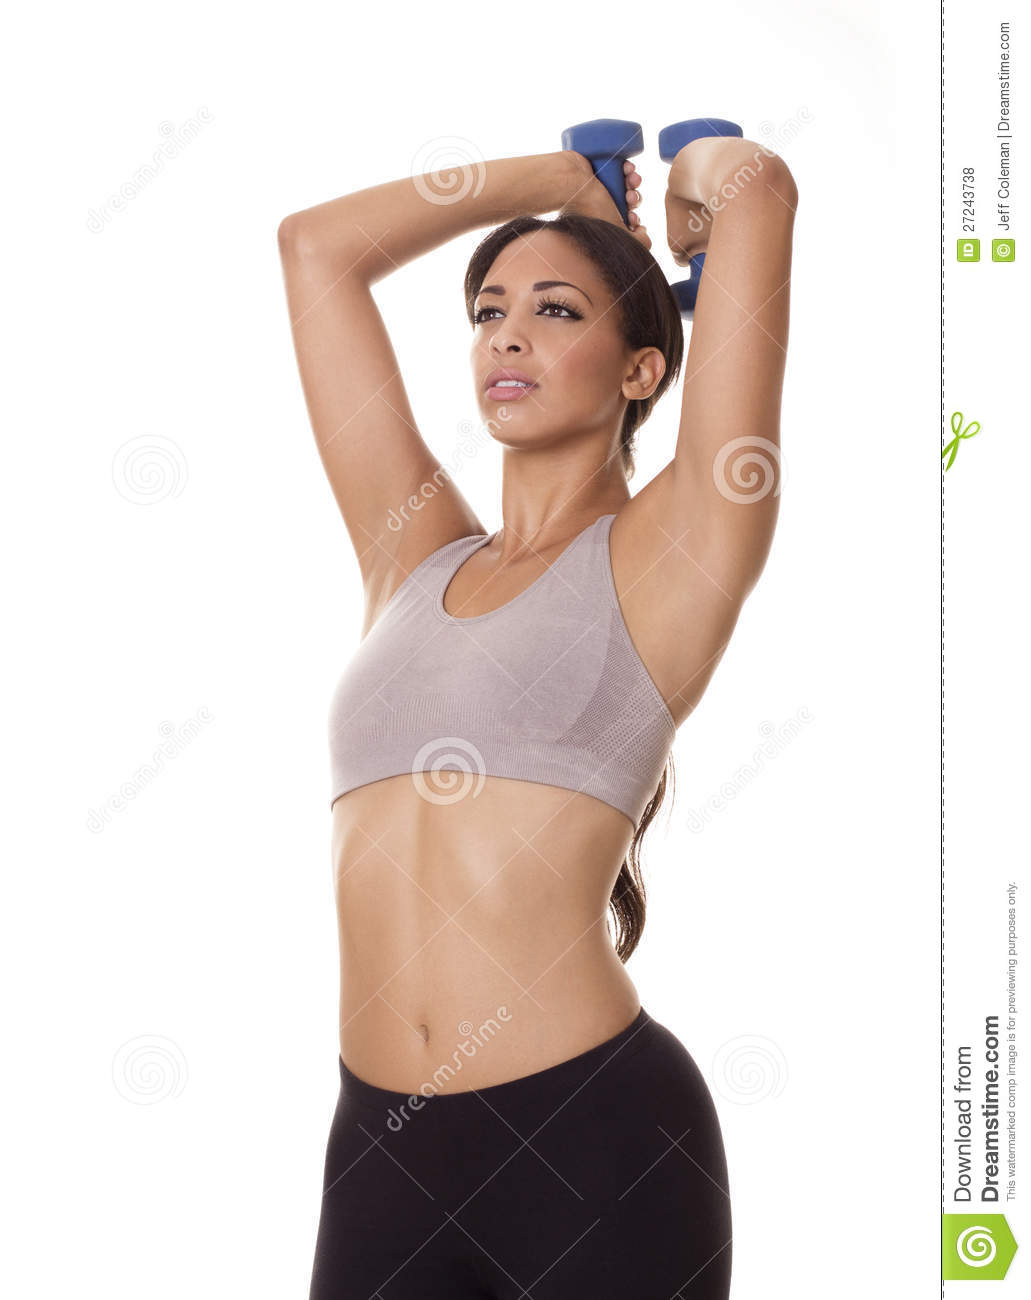 2015 Sherwin Williams Color Of The Year Female Fitness Model Weights Female Fitness Model Uses